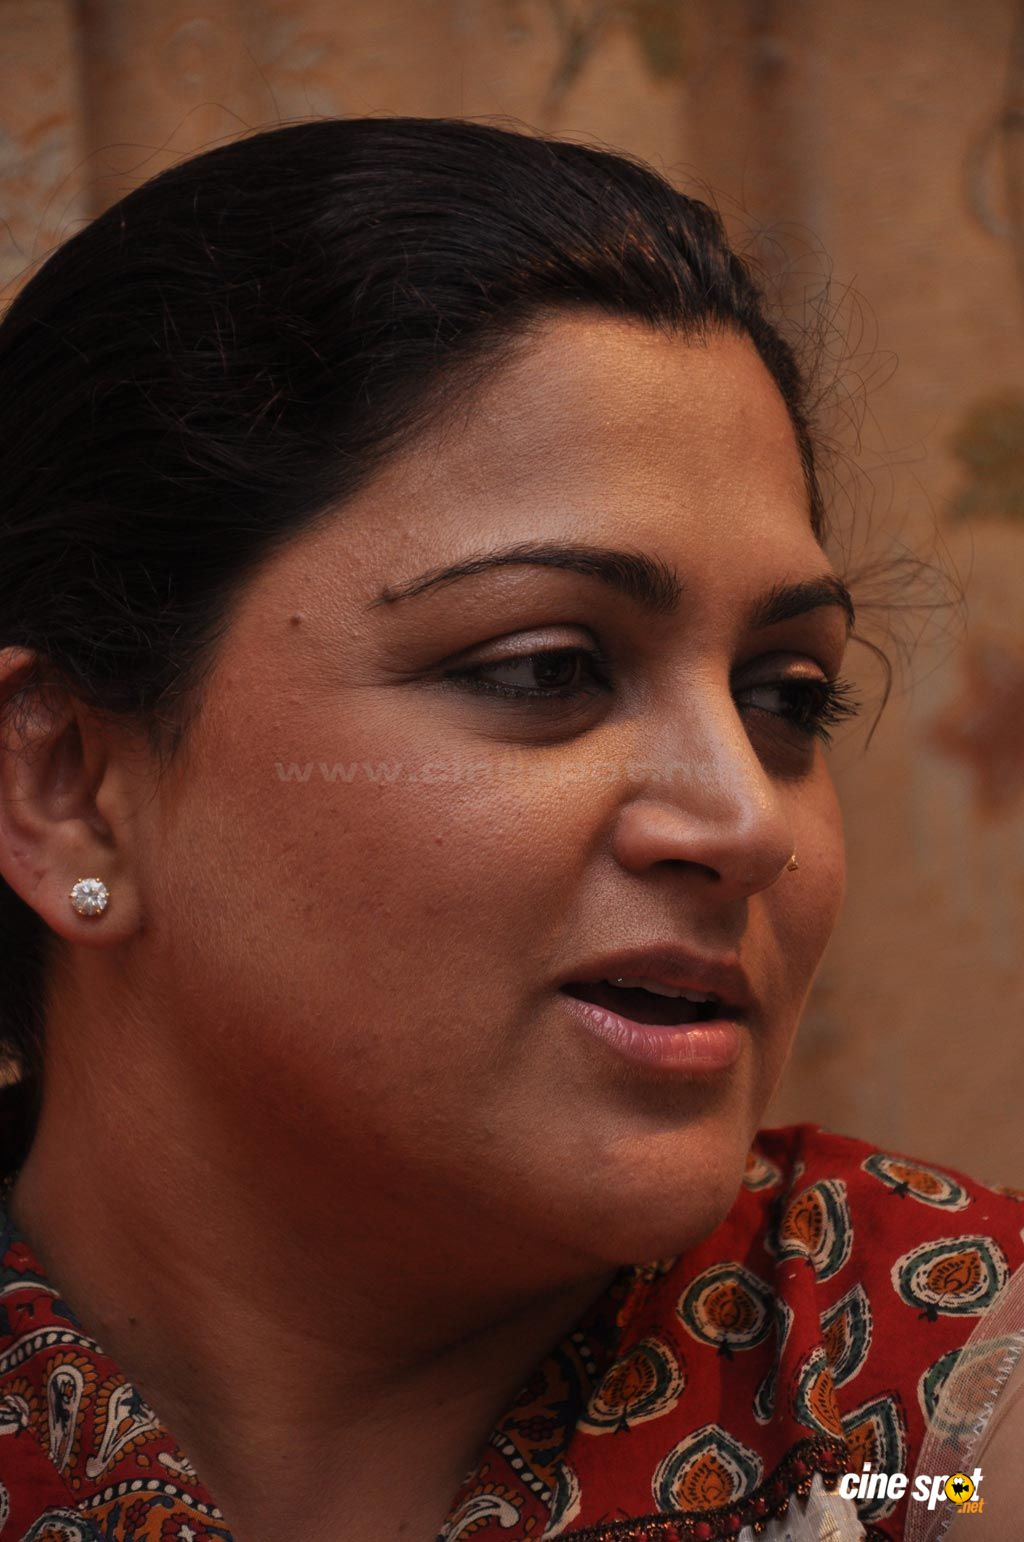 Wallpapers Gallery Kushboo Auntie Hot South Actress Pics